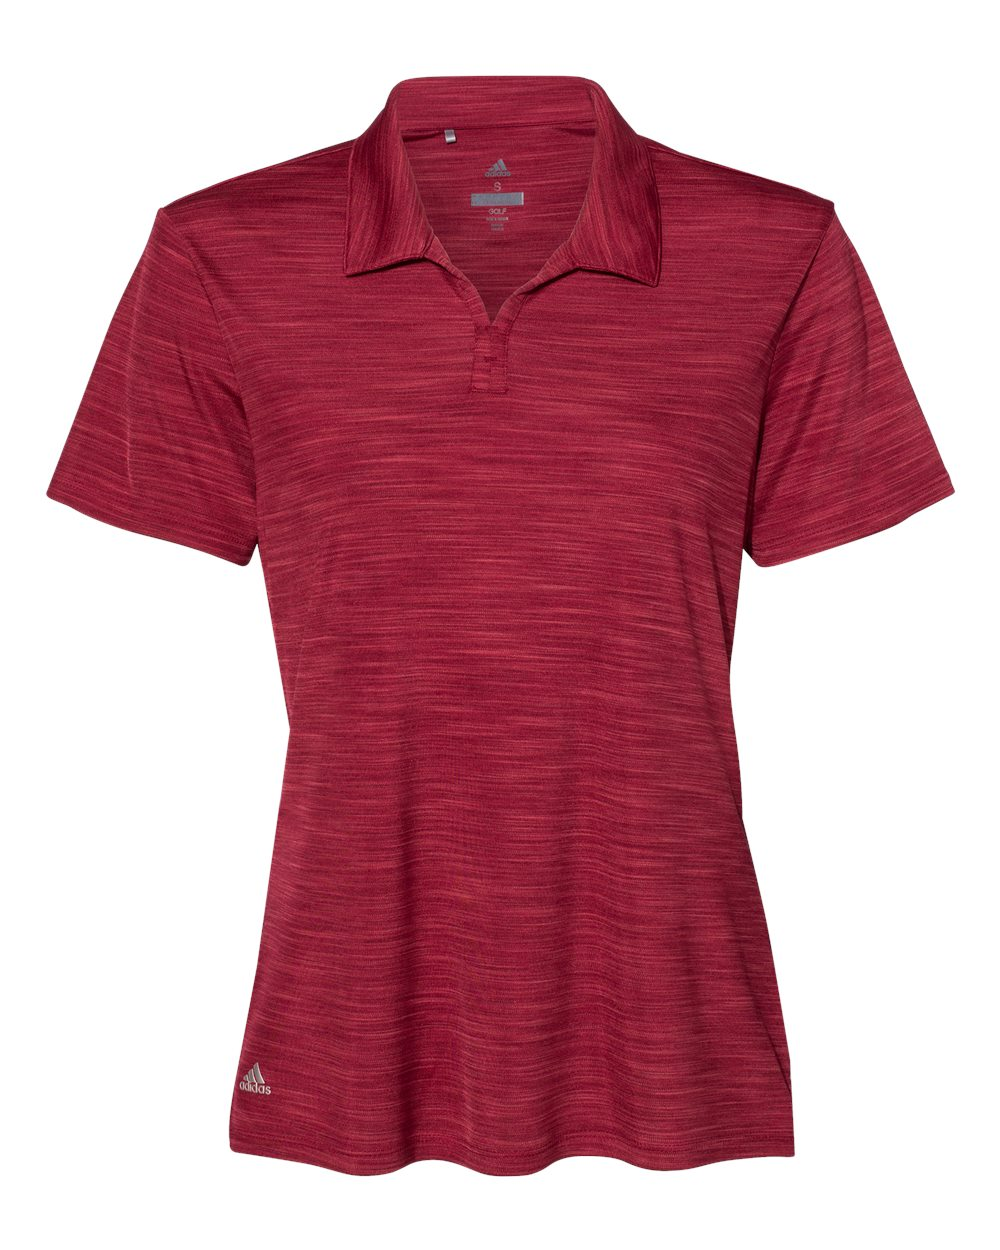 click to view Collegiate Burgundy Melange